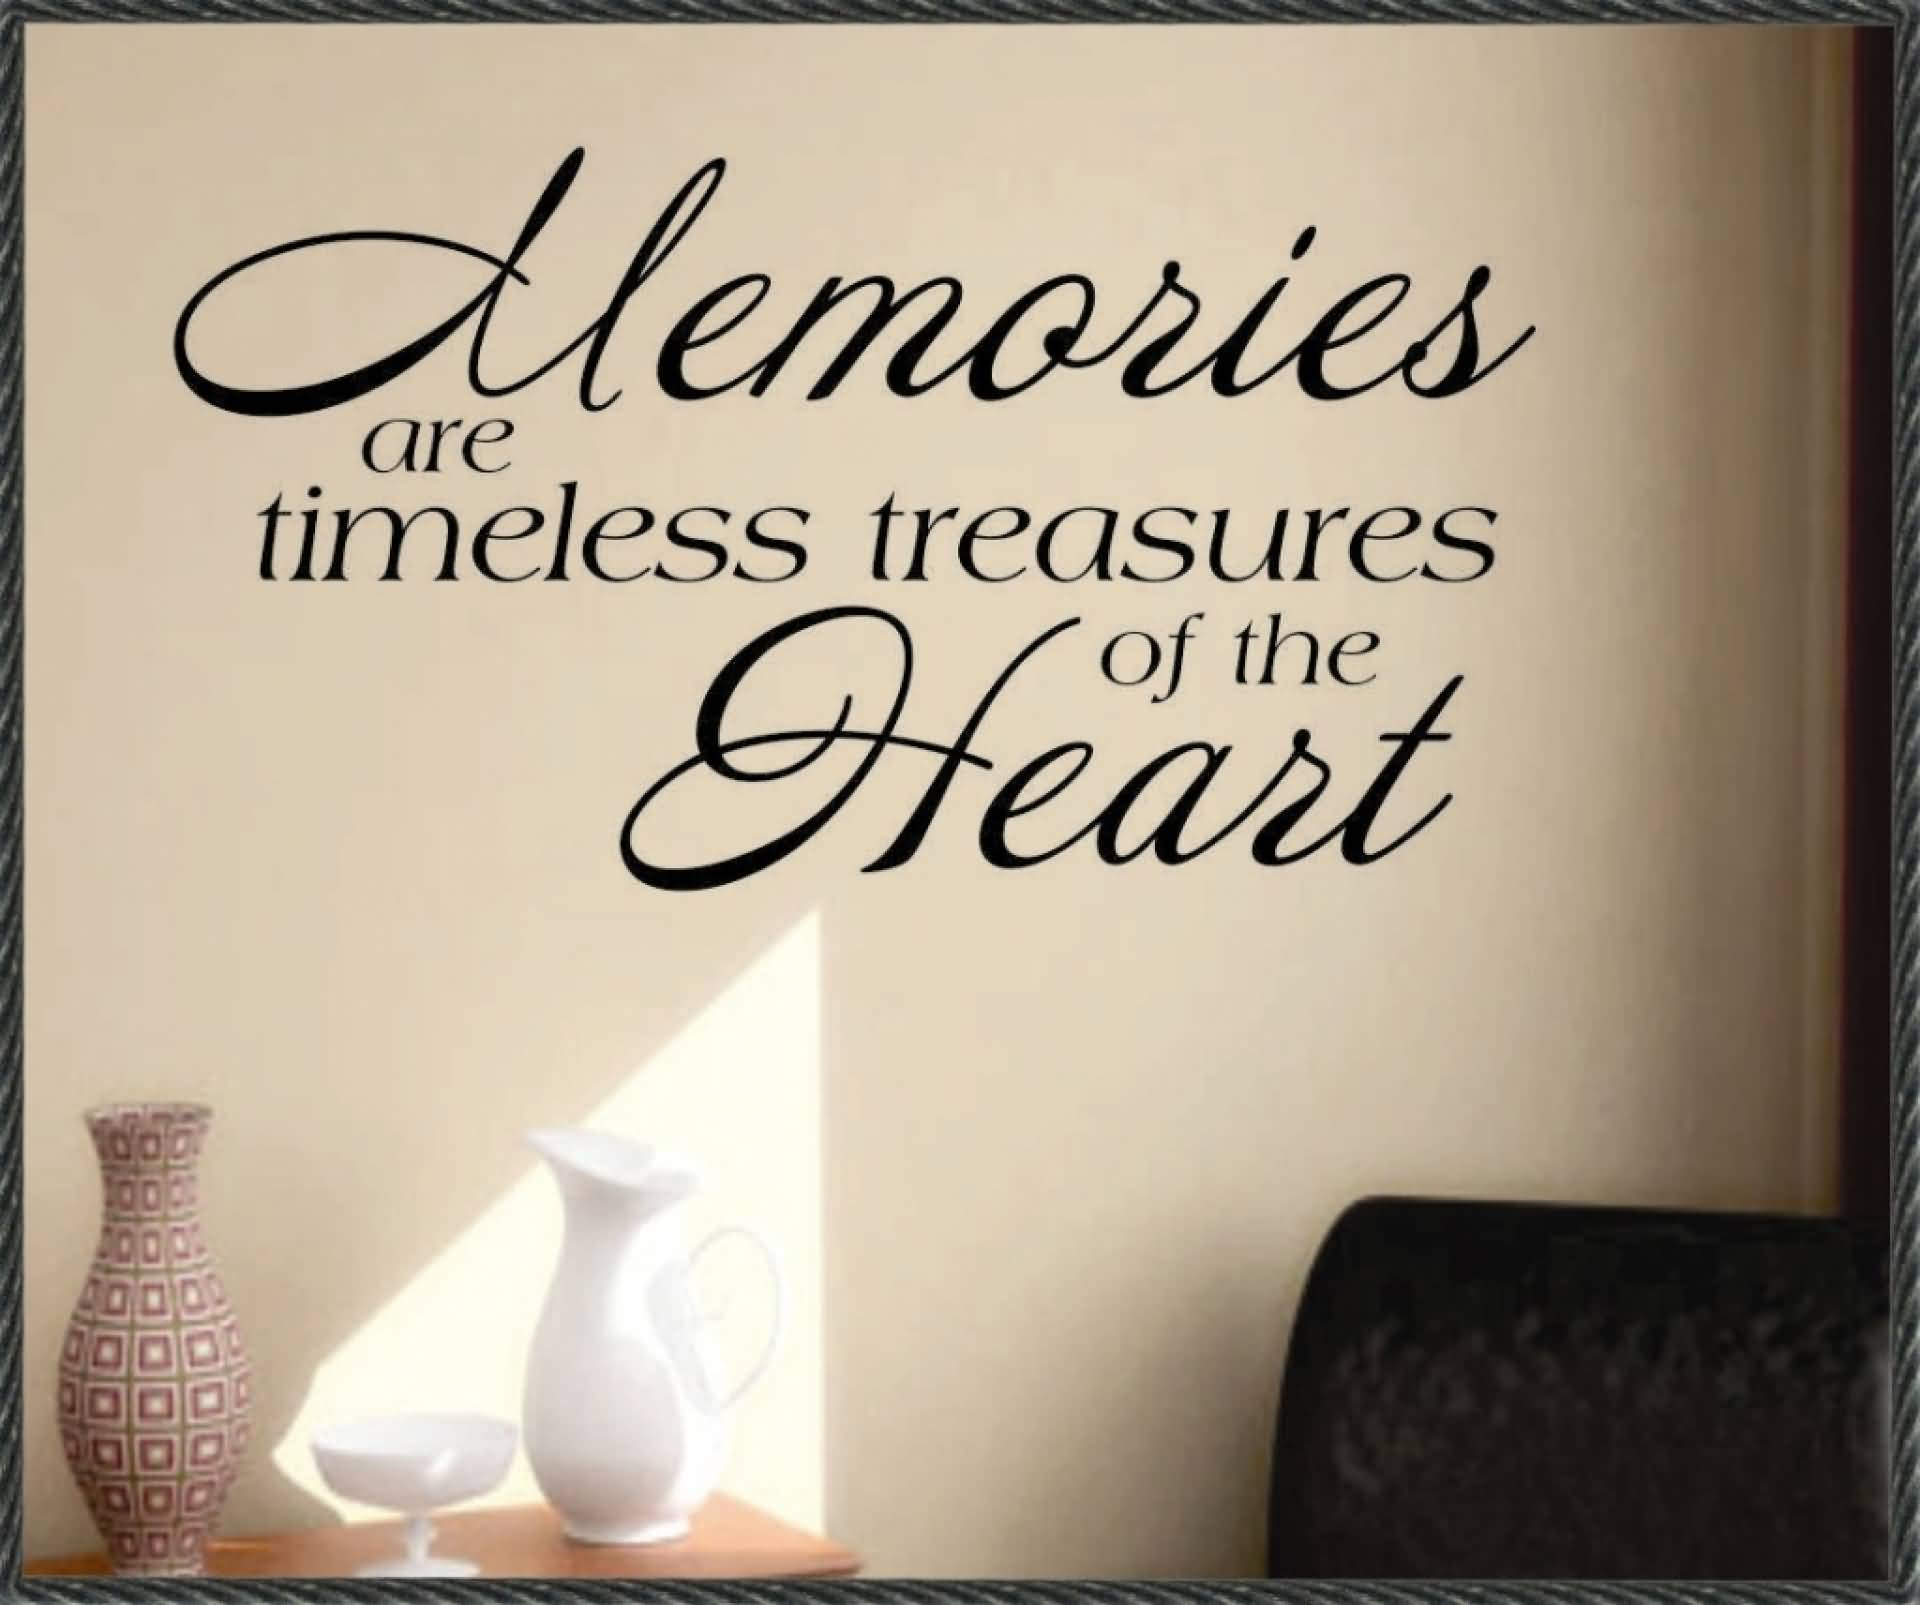 In Remembrance Quotes Of A Loved One In Remembrance Quotes Of A Loved One 19  Quotesbae